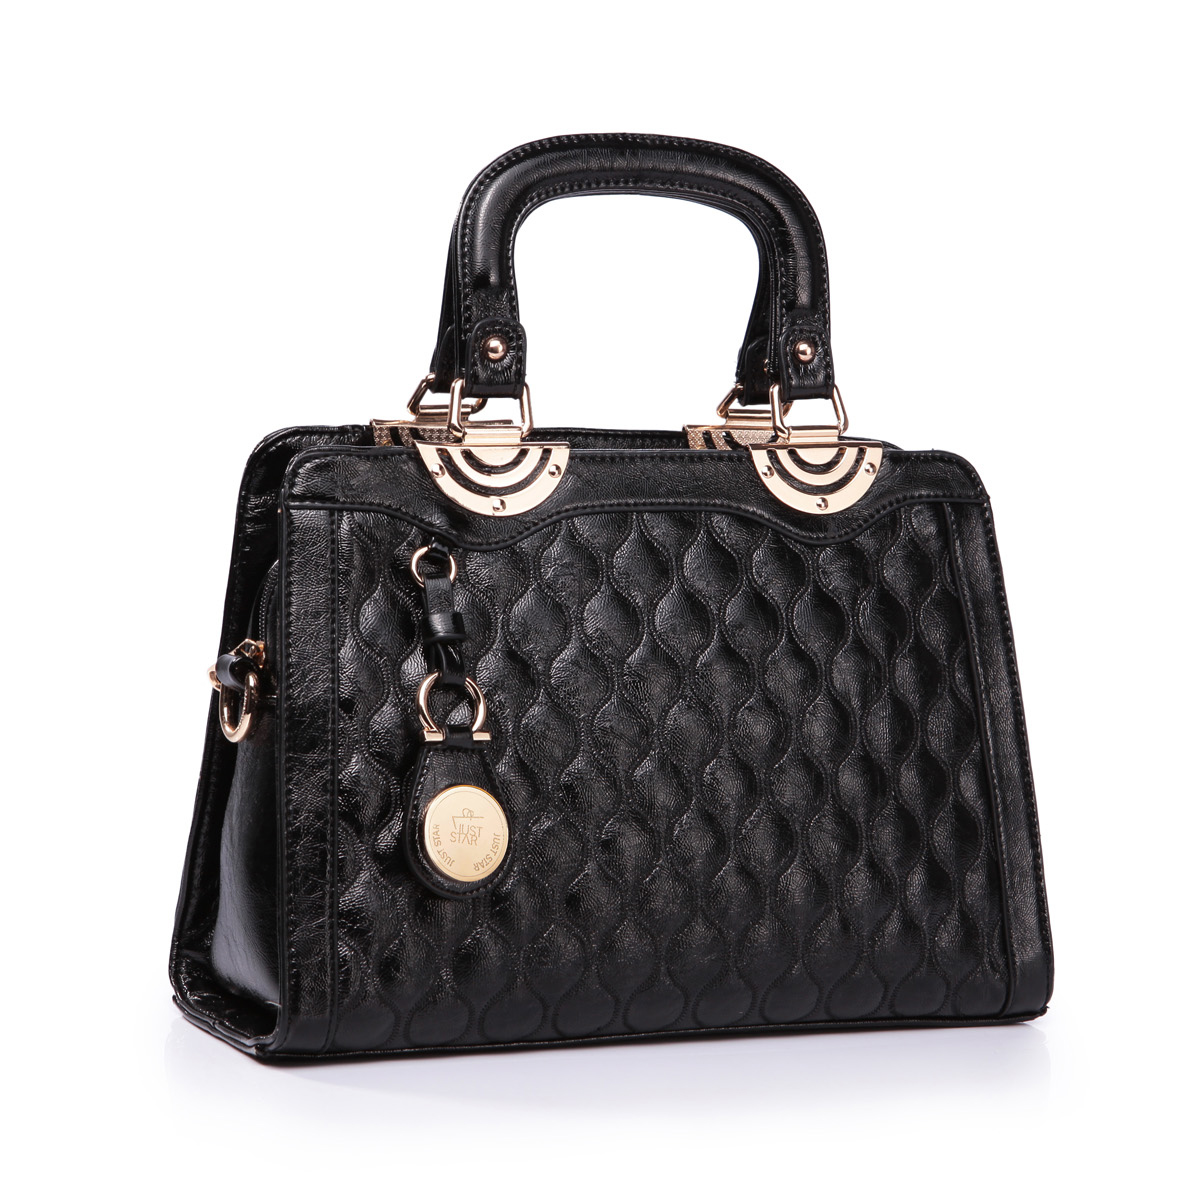 PU leather tote bag Black